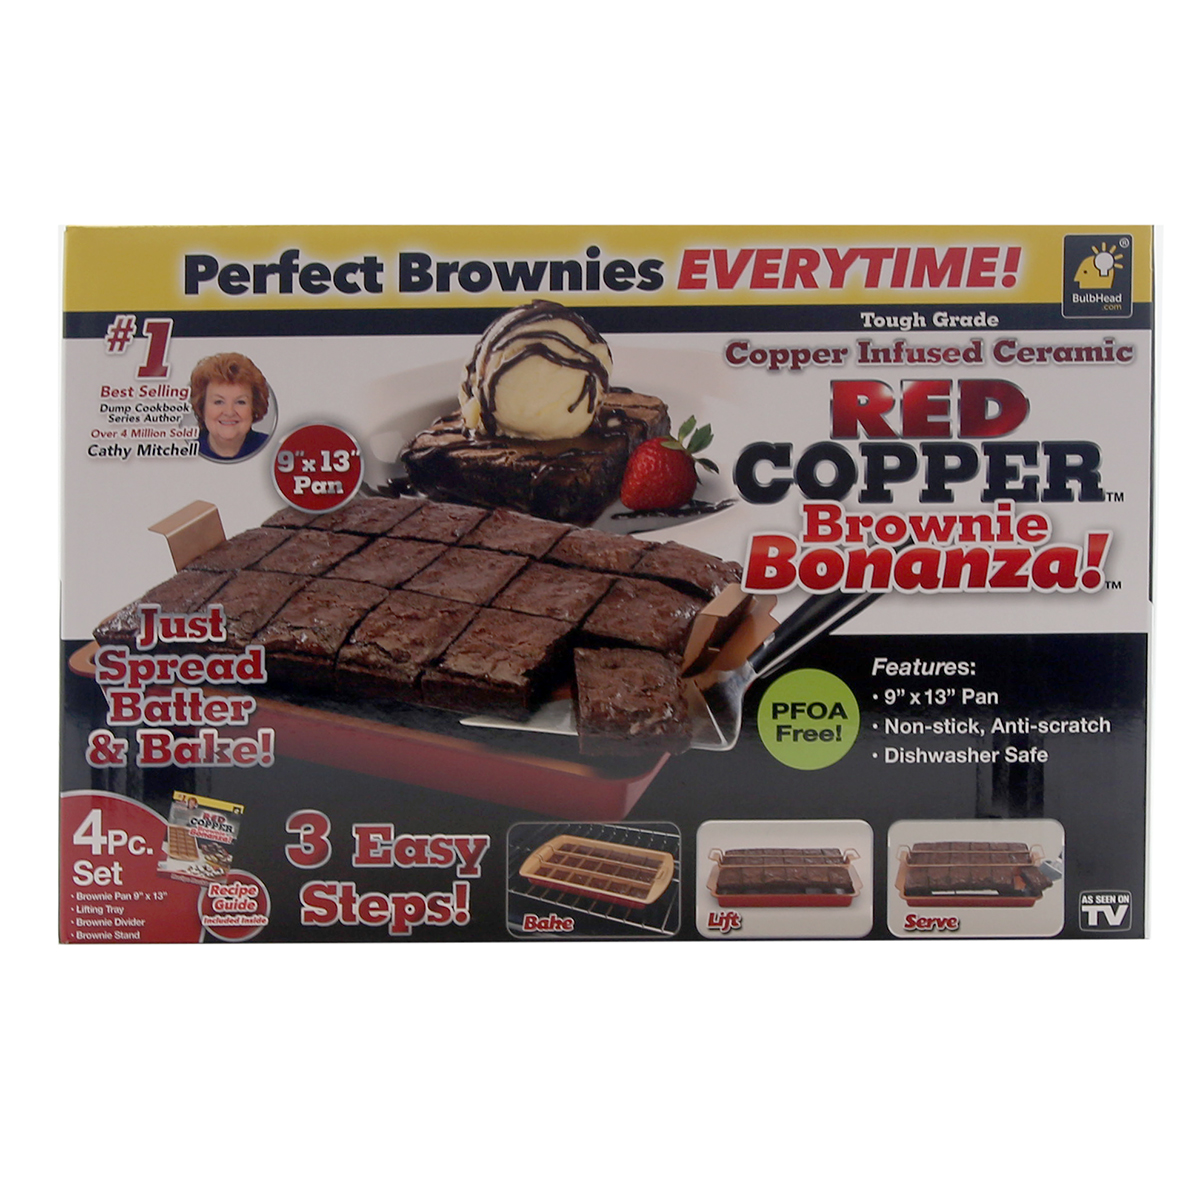 Details about As Seen On TV Red Copper Brownie Bonanza Copper Infused Non  Stick Pan